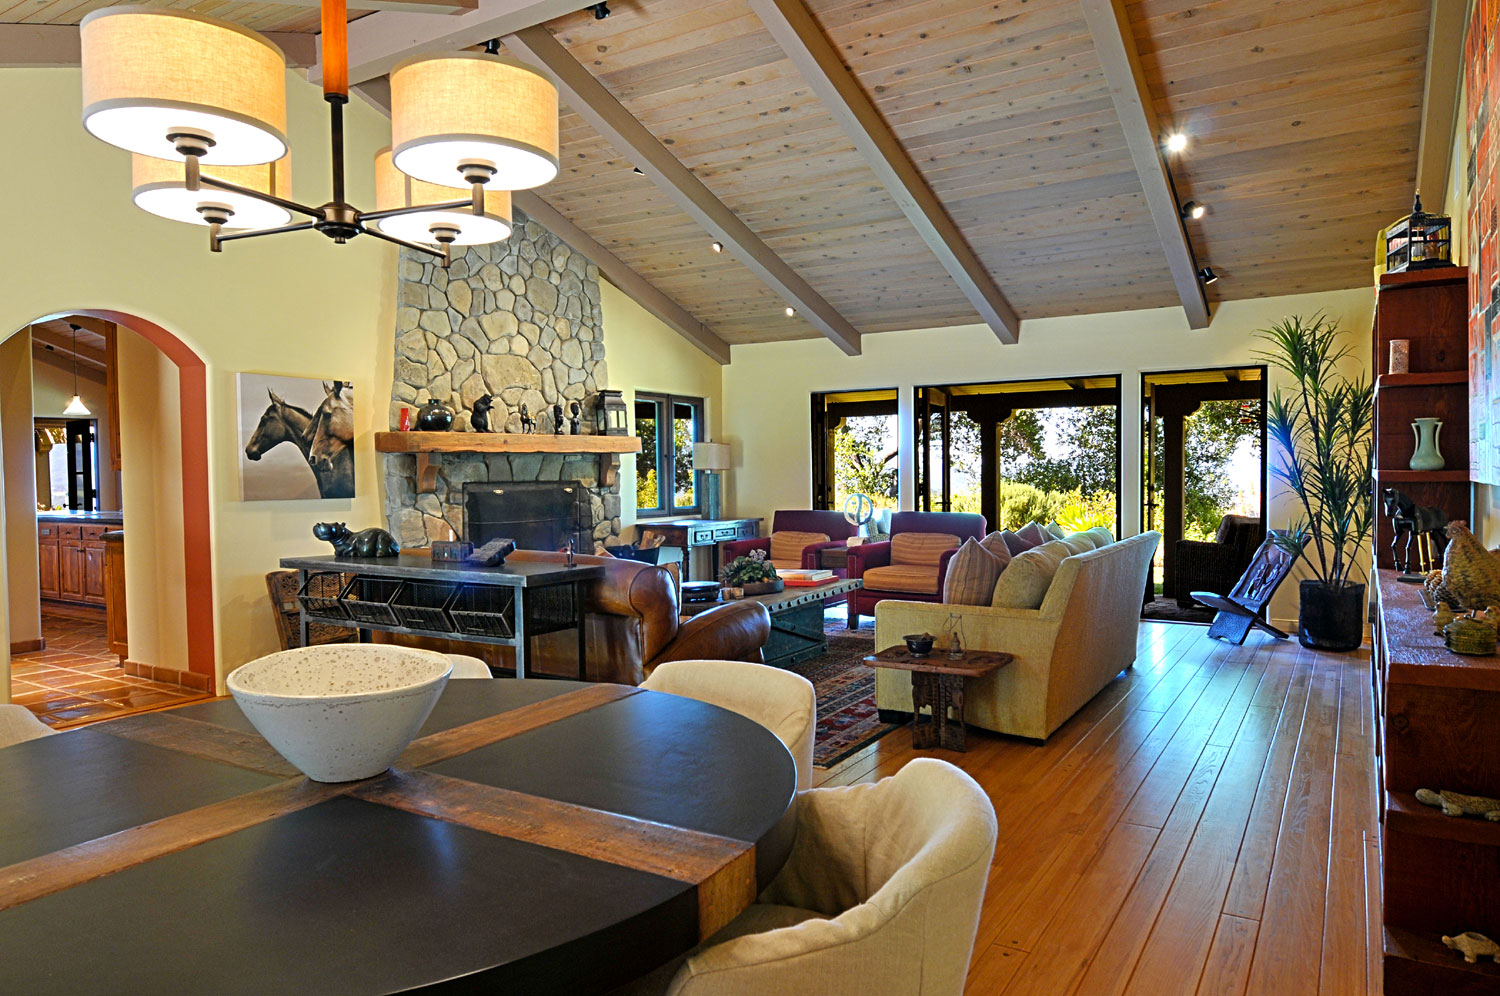 Interior living spaces have been renovated with vaulted ceilings to lend openness to the home.